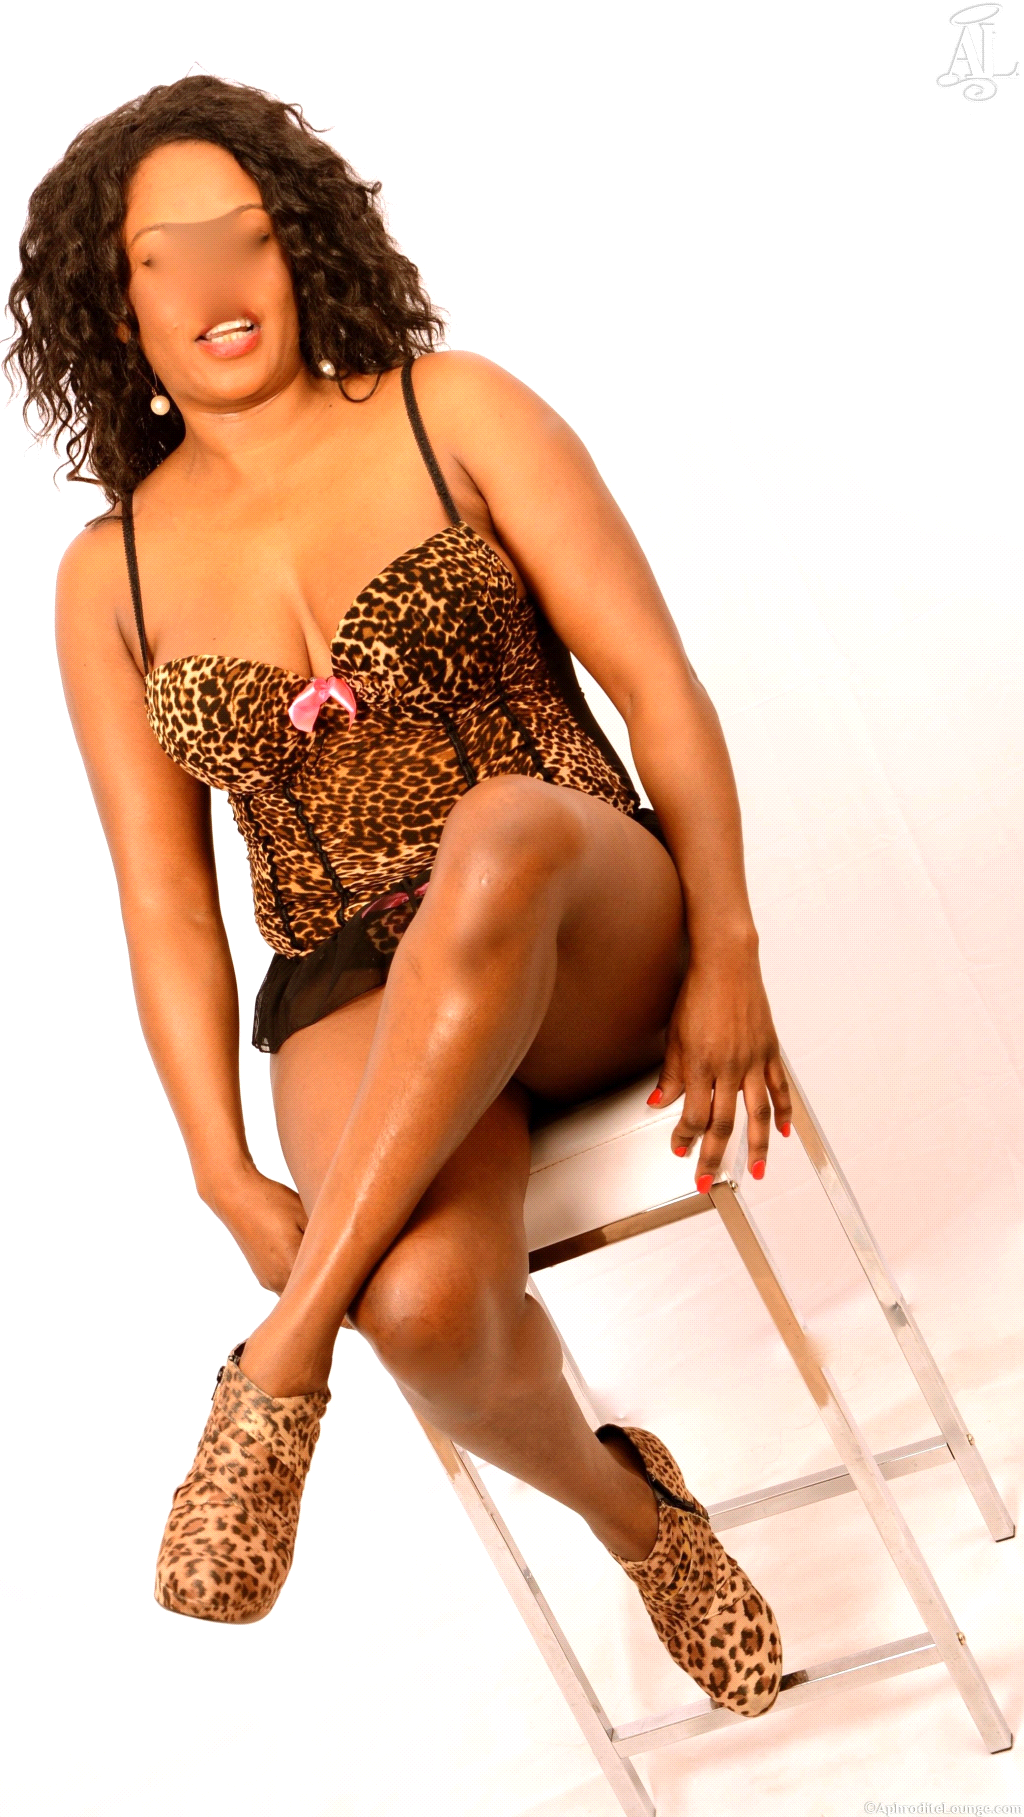 ebony escorts harrow